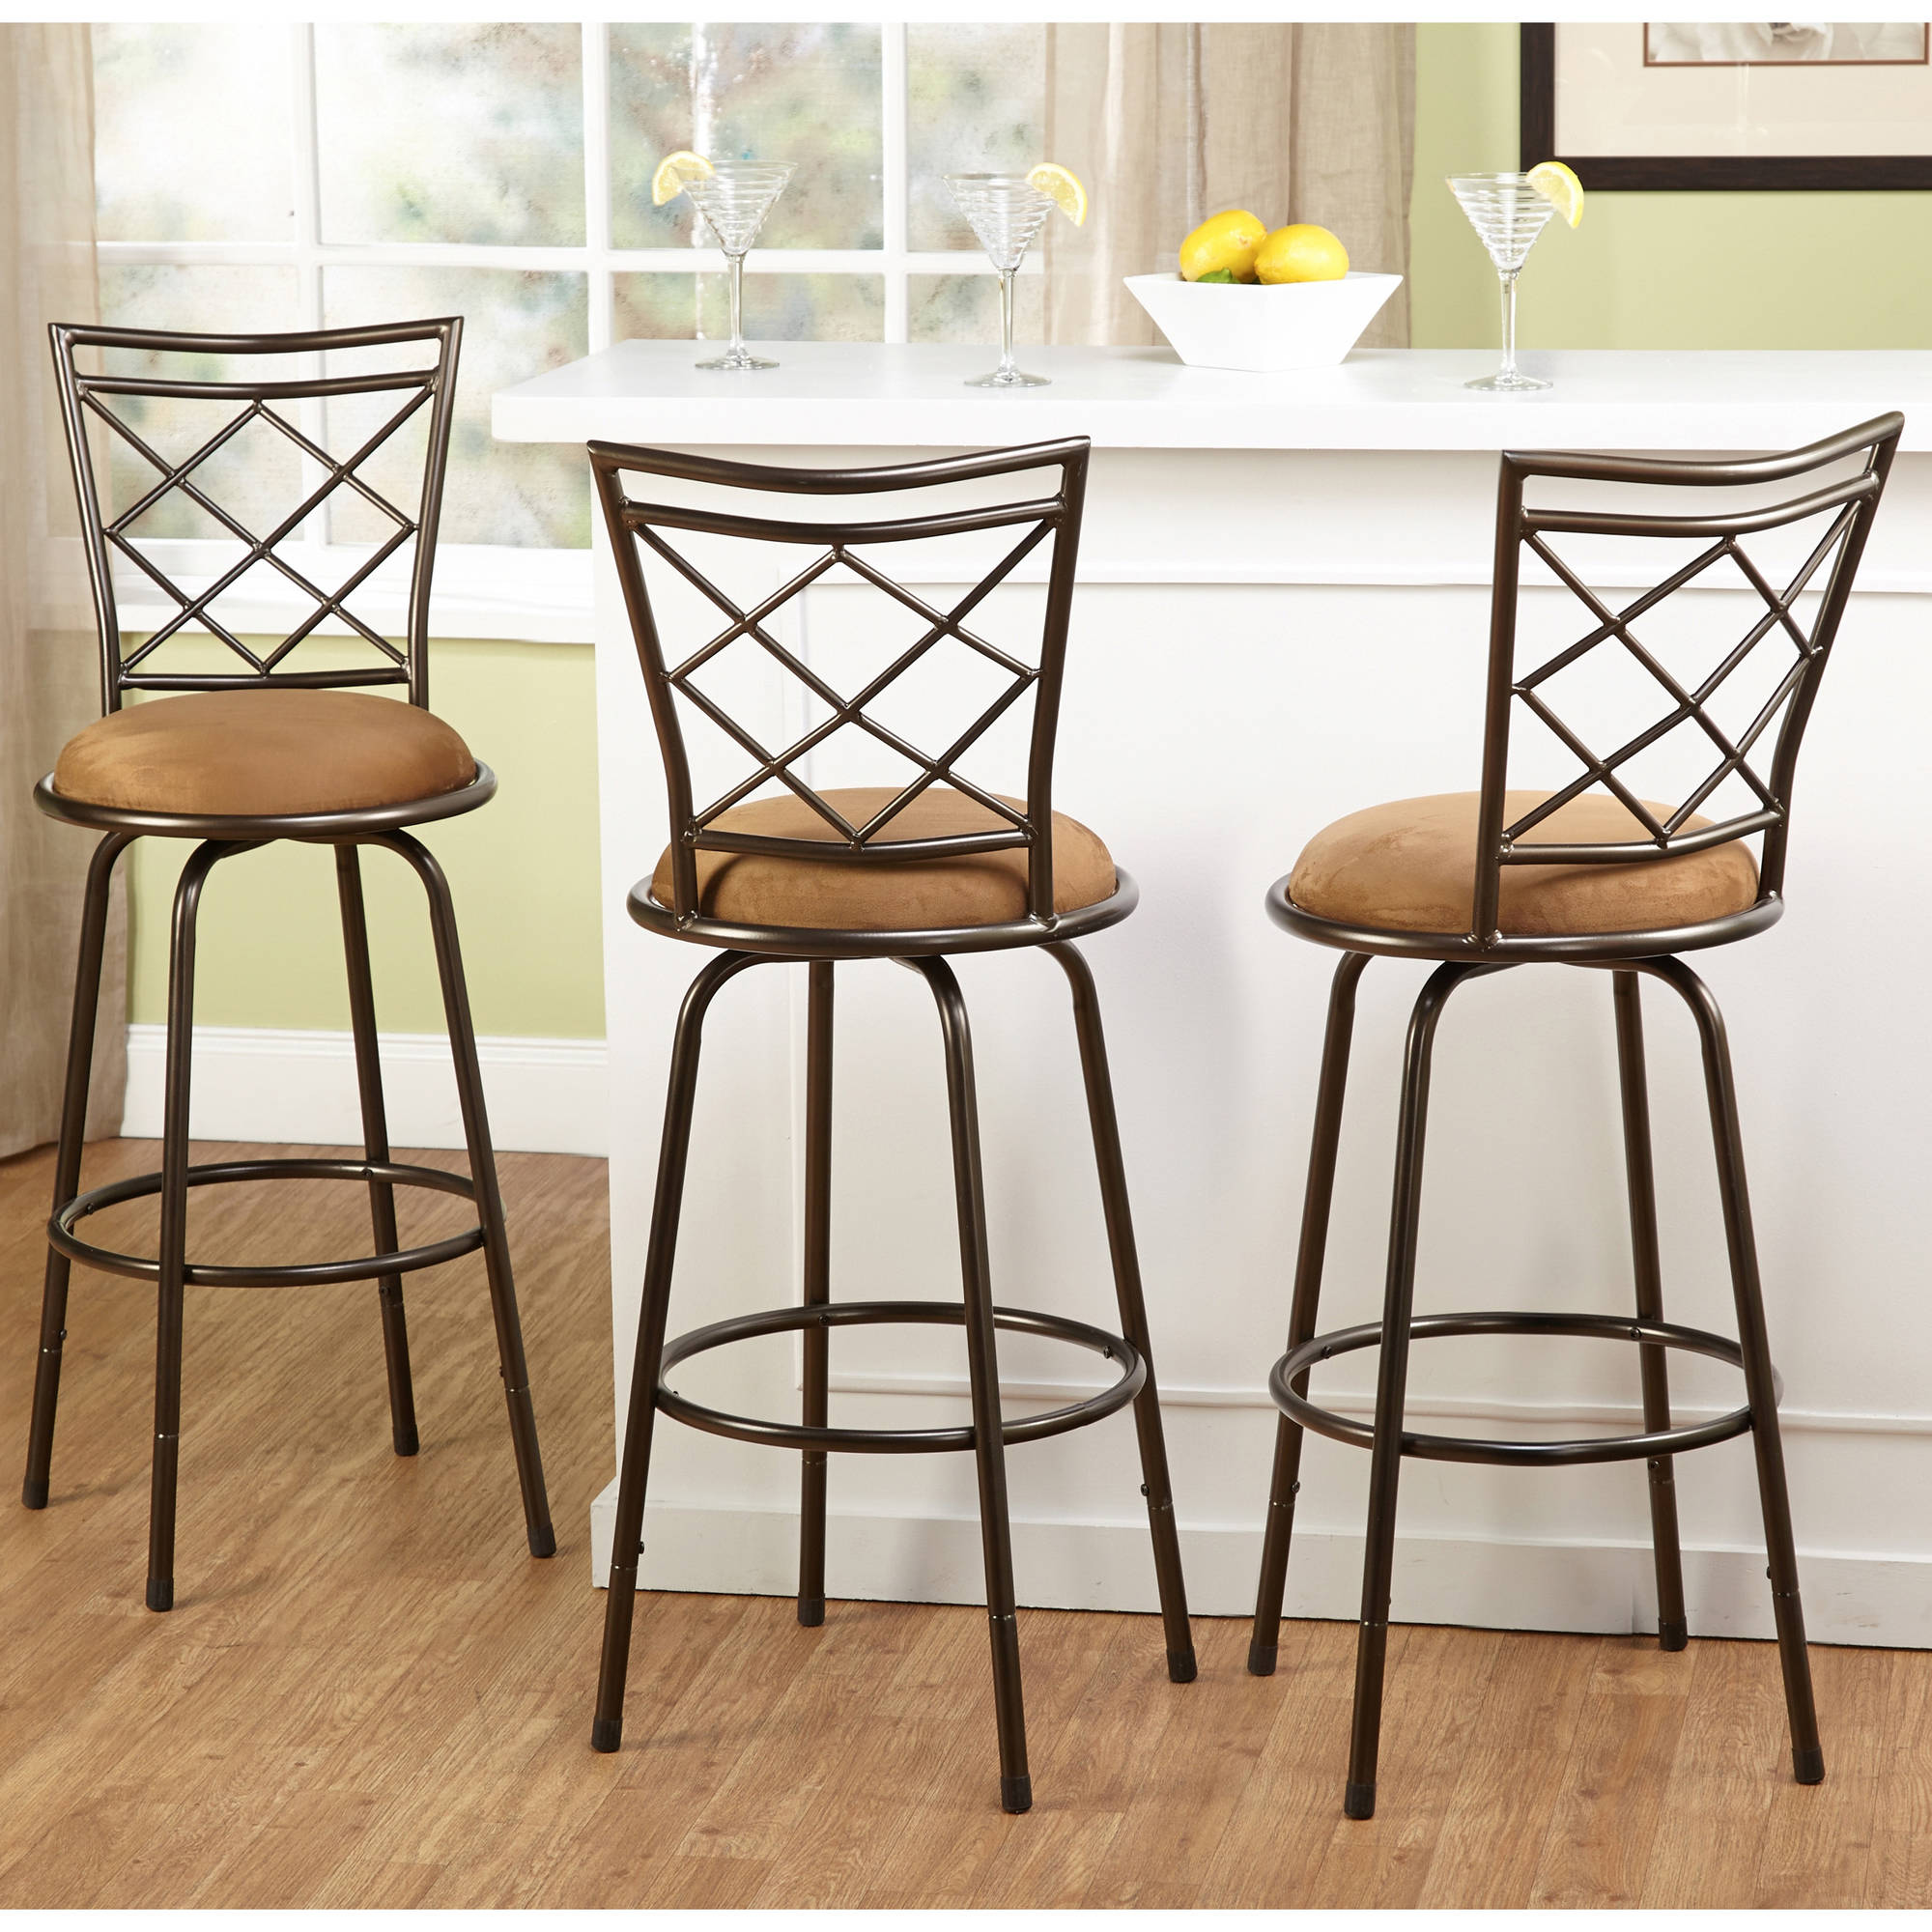 Astonishing Tms Avery Adjustable Height Bar Stool Multiple Colors Set Of 3 Walmart Com Ibusinesslaw Wood Chair Design Ideas Ibusinesslaworg